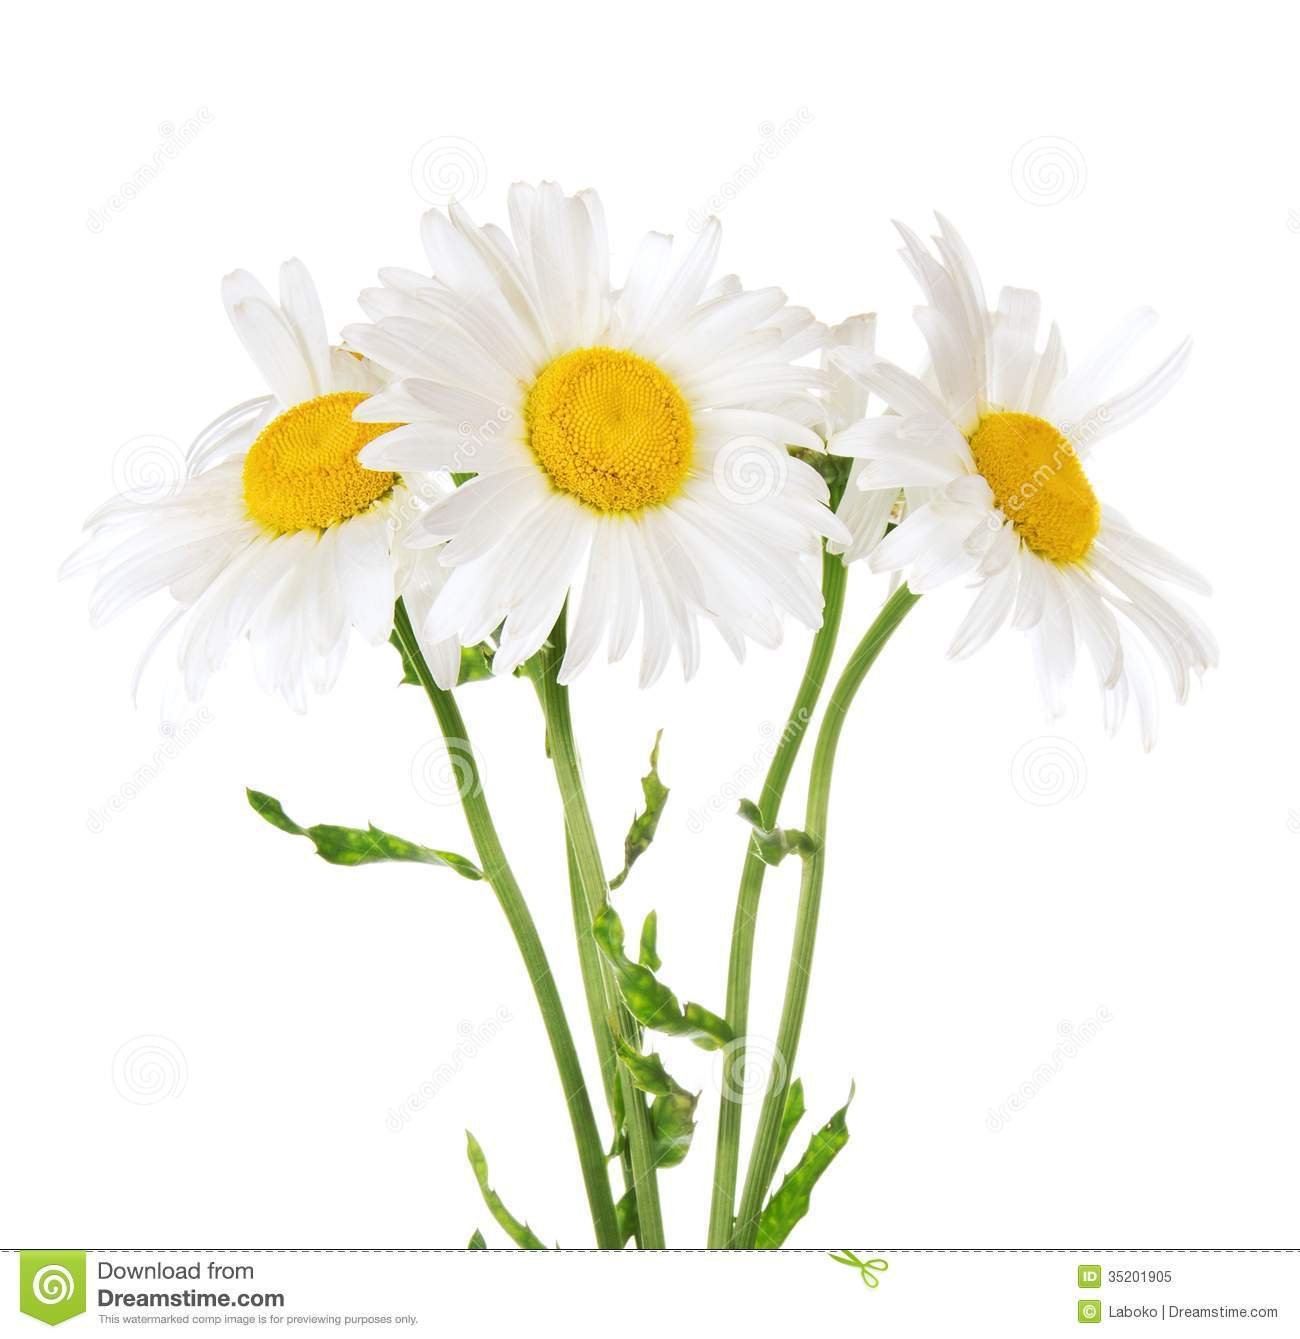 Bouquet of daisies clipart picture royalty free library Daisy bouquet clipart » Clipart Portal picture royalty free library